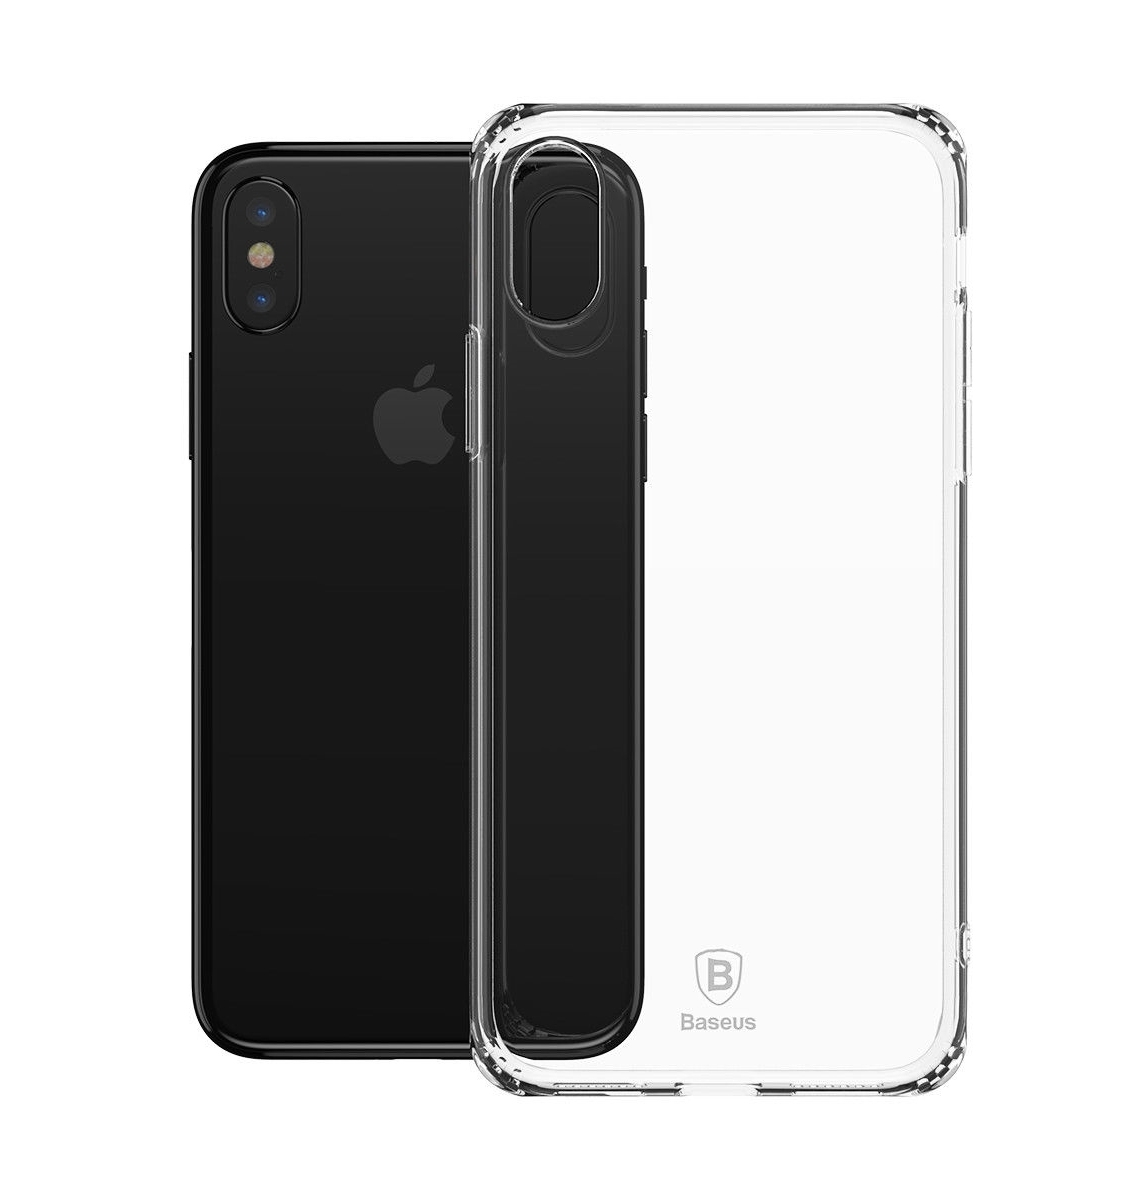 Baseus Simplicity Series Case iPhone XR Transparent